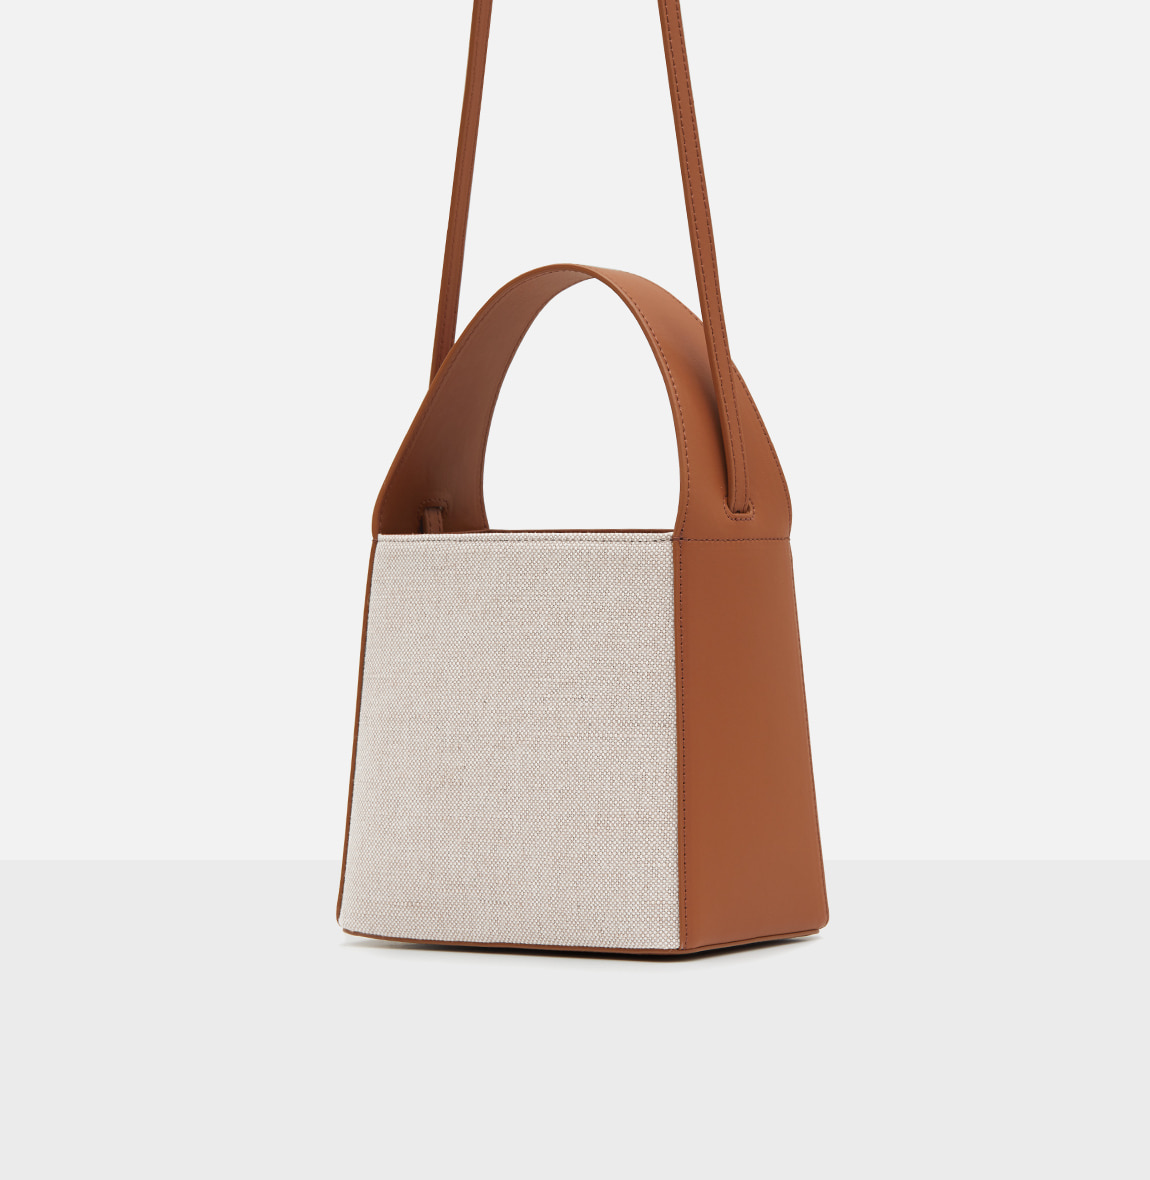 Panier tote bag Creamy tan